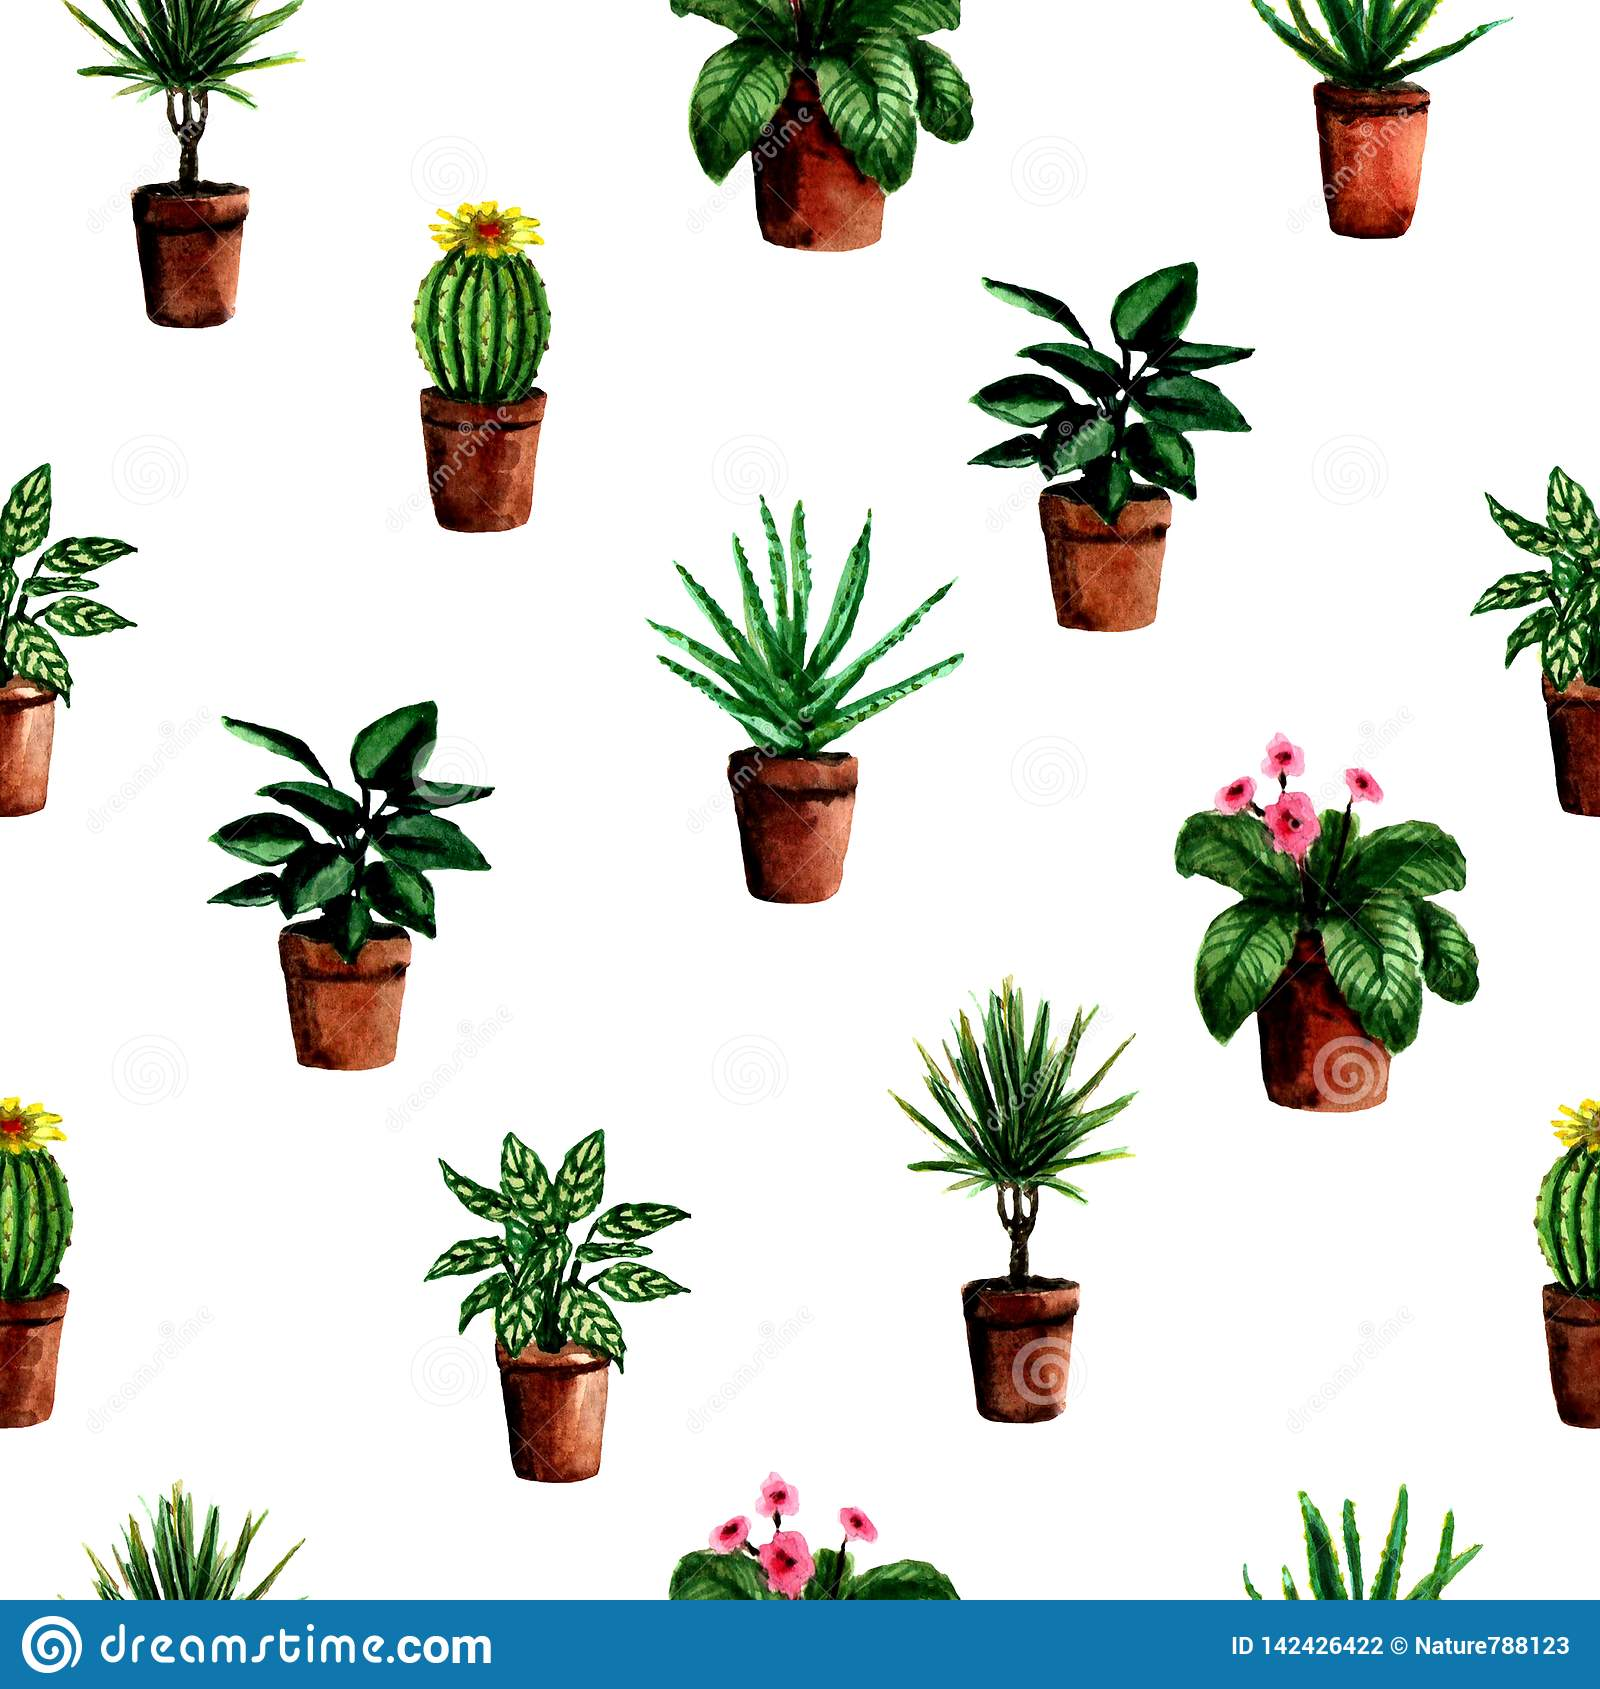 Seamless pattern with watercolor hand painted house green plants in pots For fabric textile, scrapbooking or wrapping paper design